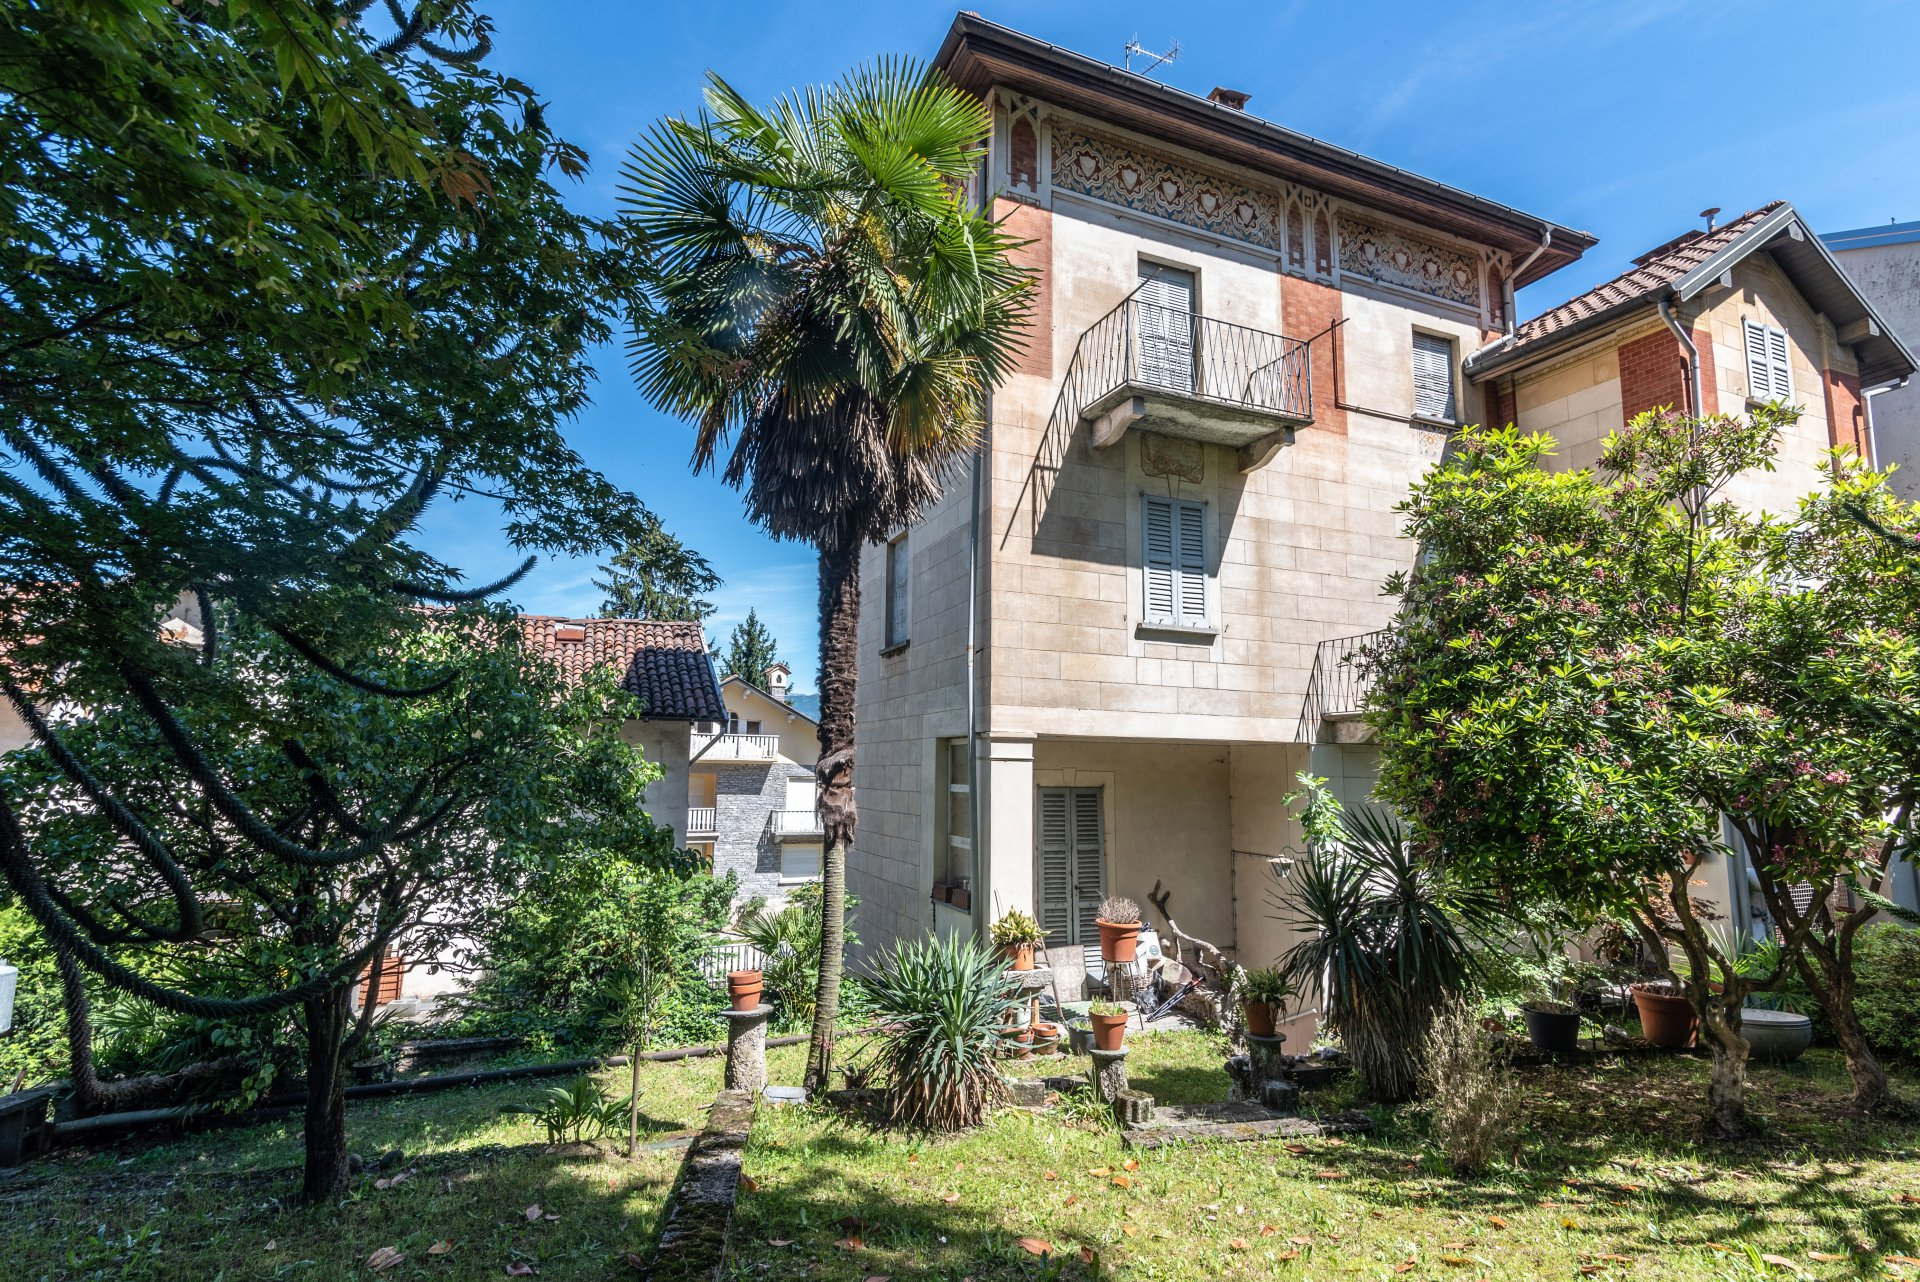 Property for sale in the centre of Stresa- real estate with  garden 02